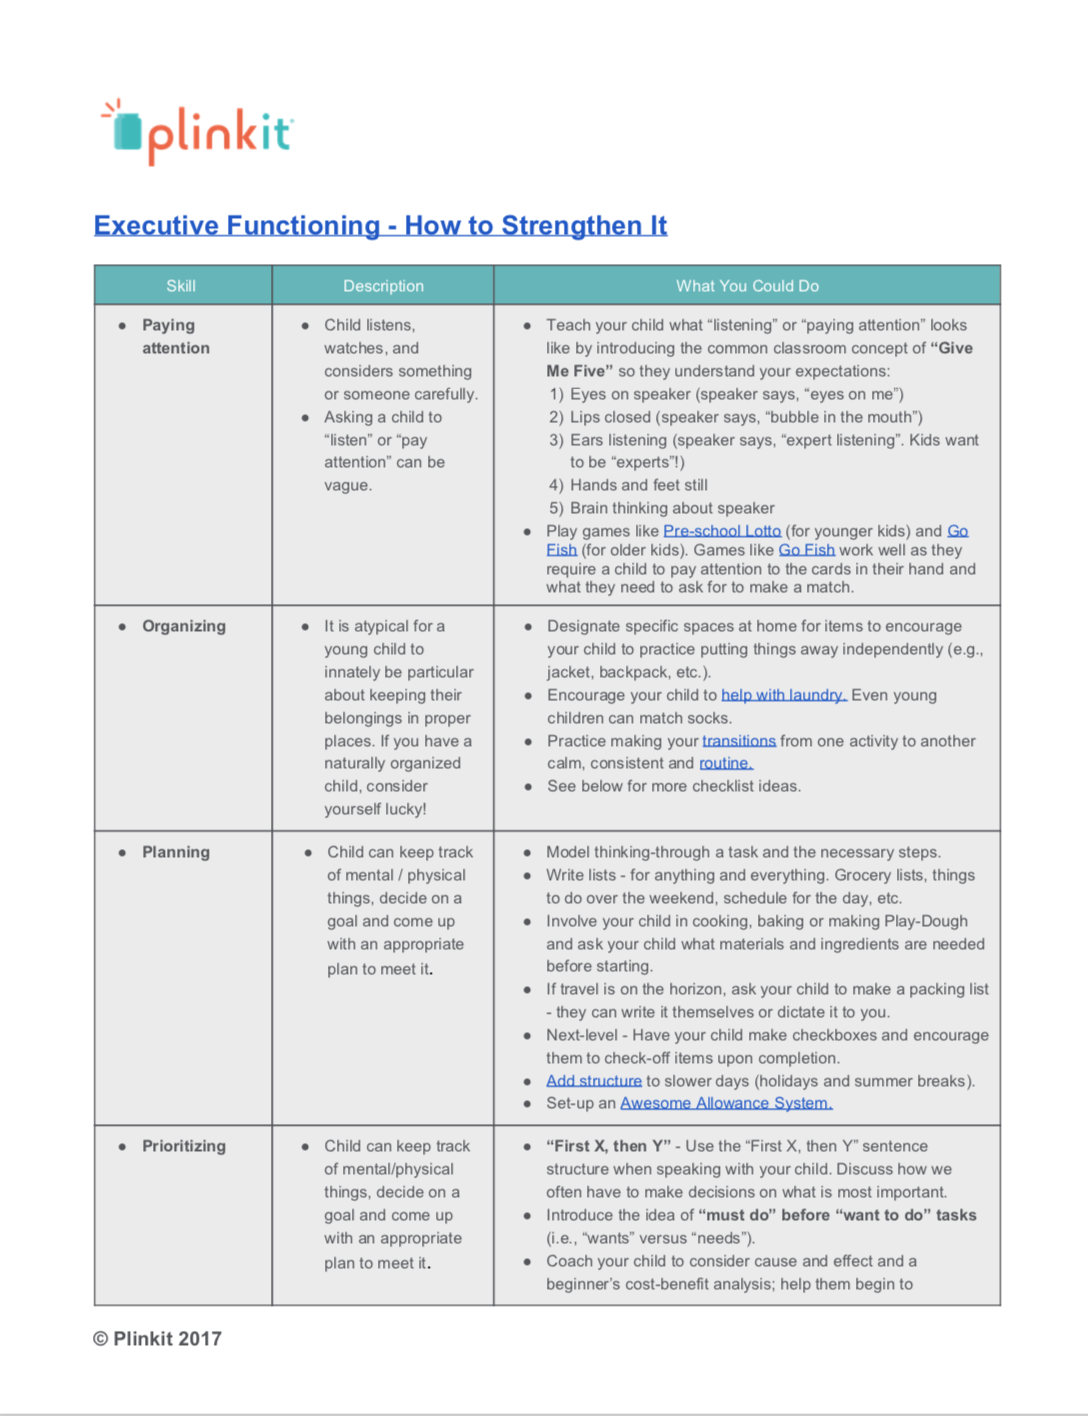 Executive Functioning Part 2